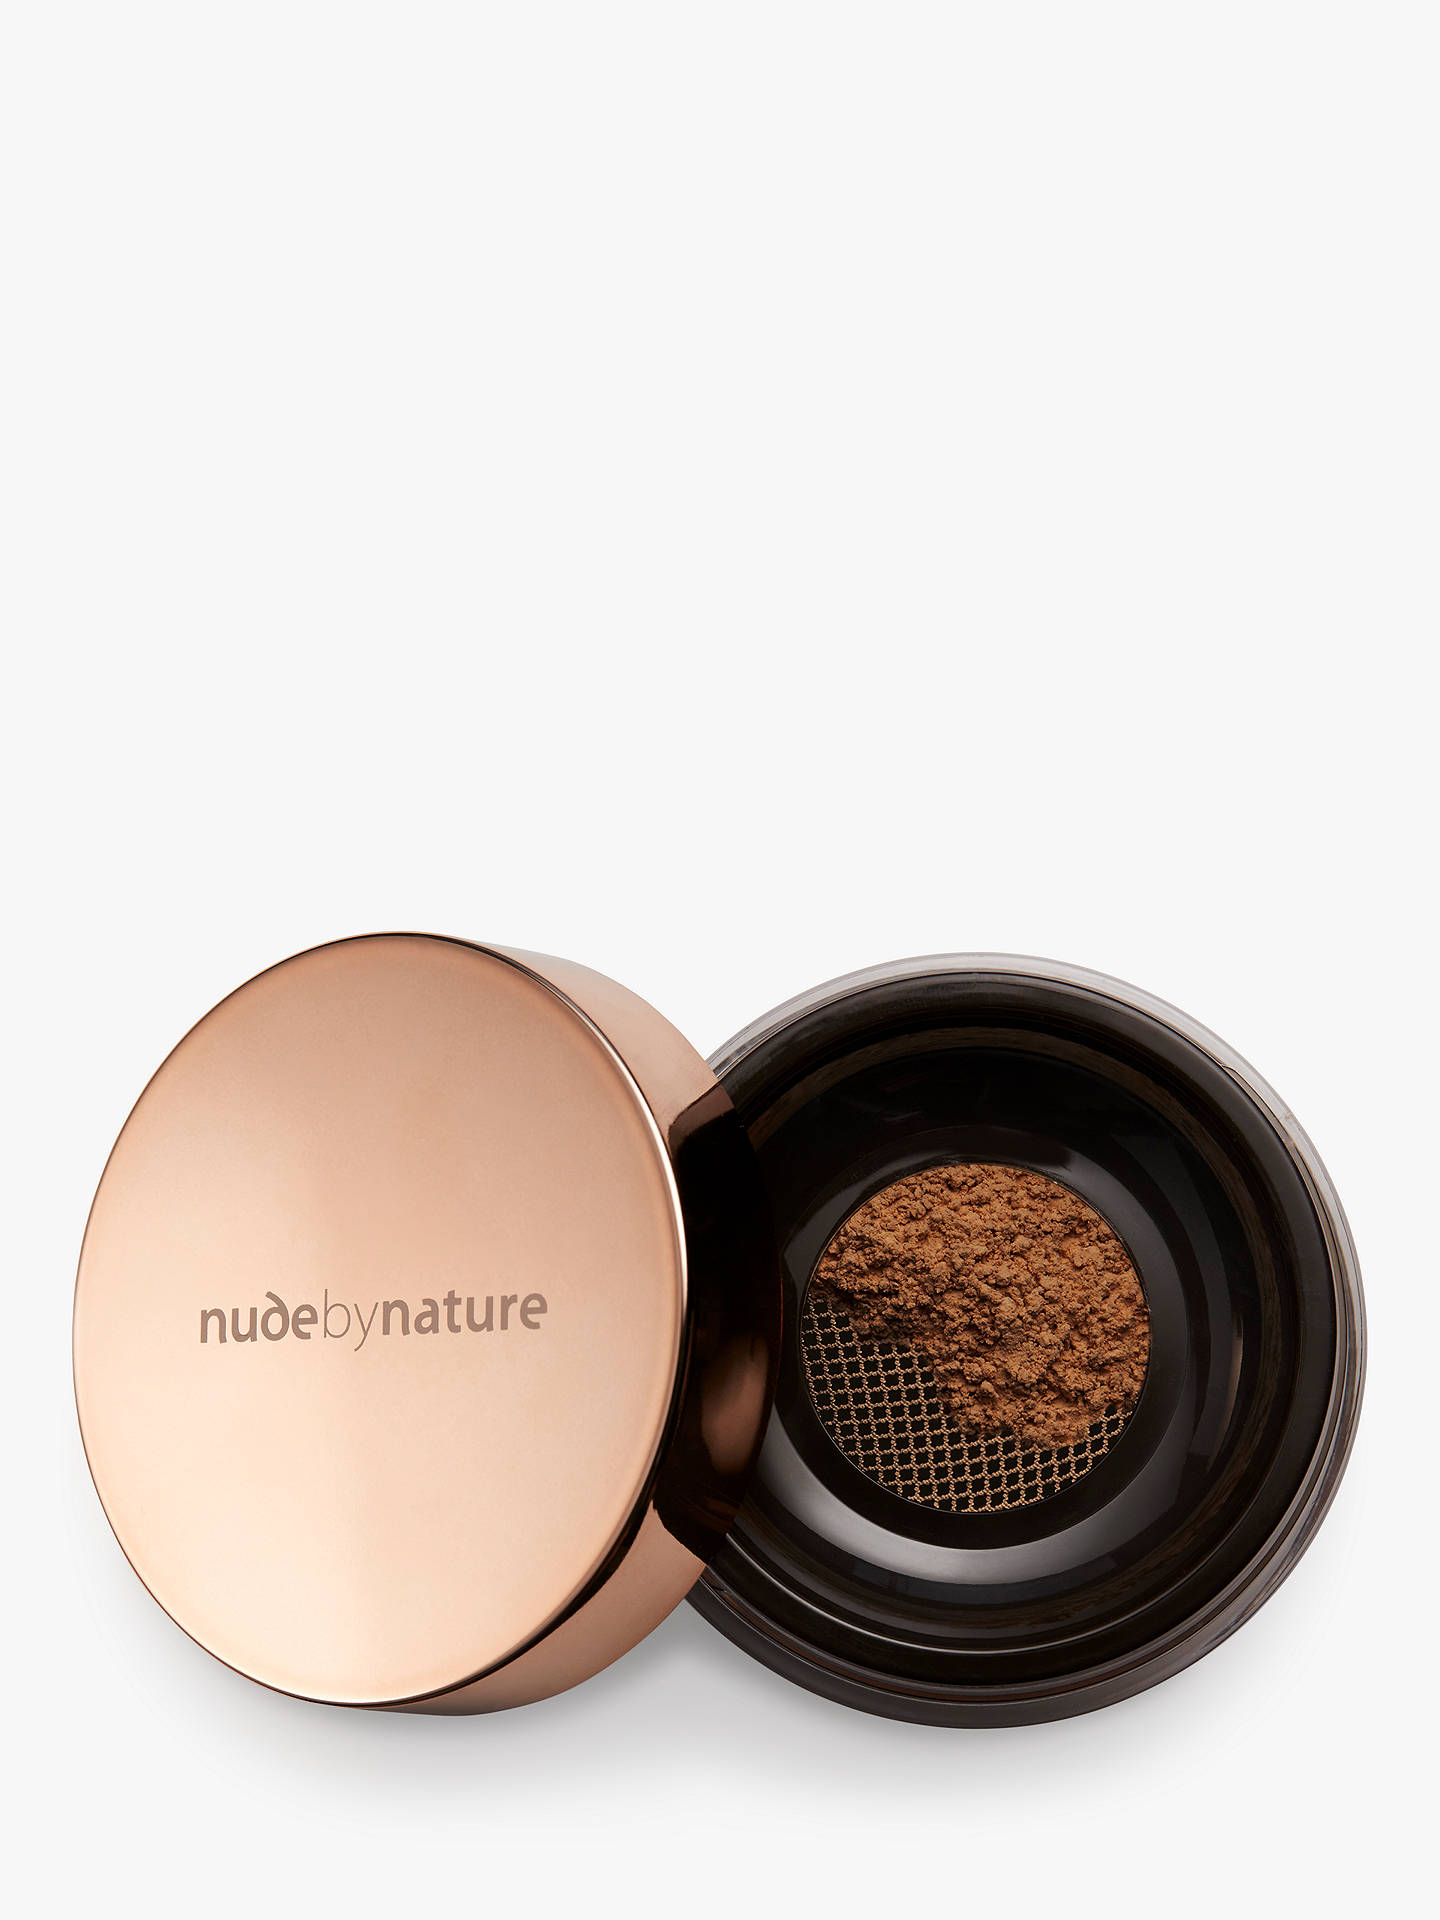 nude by nature Natural Mineral Cover - Medium 15g | Buy